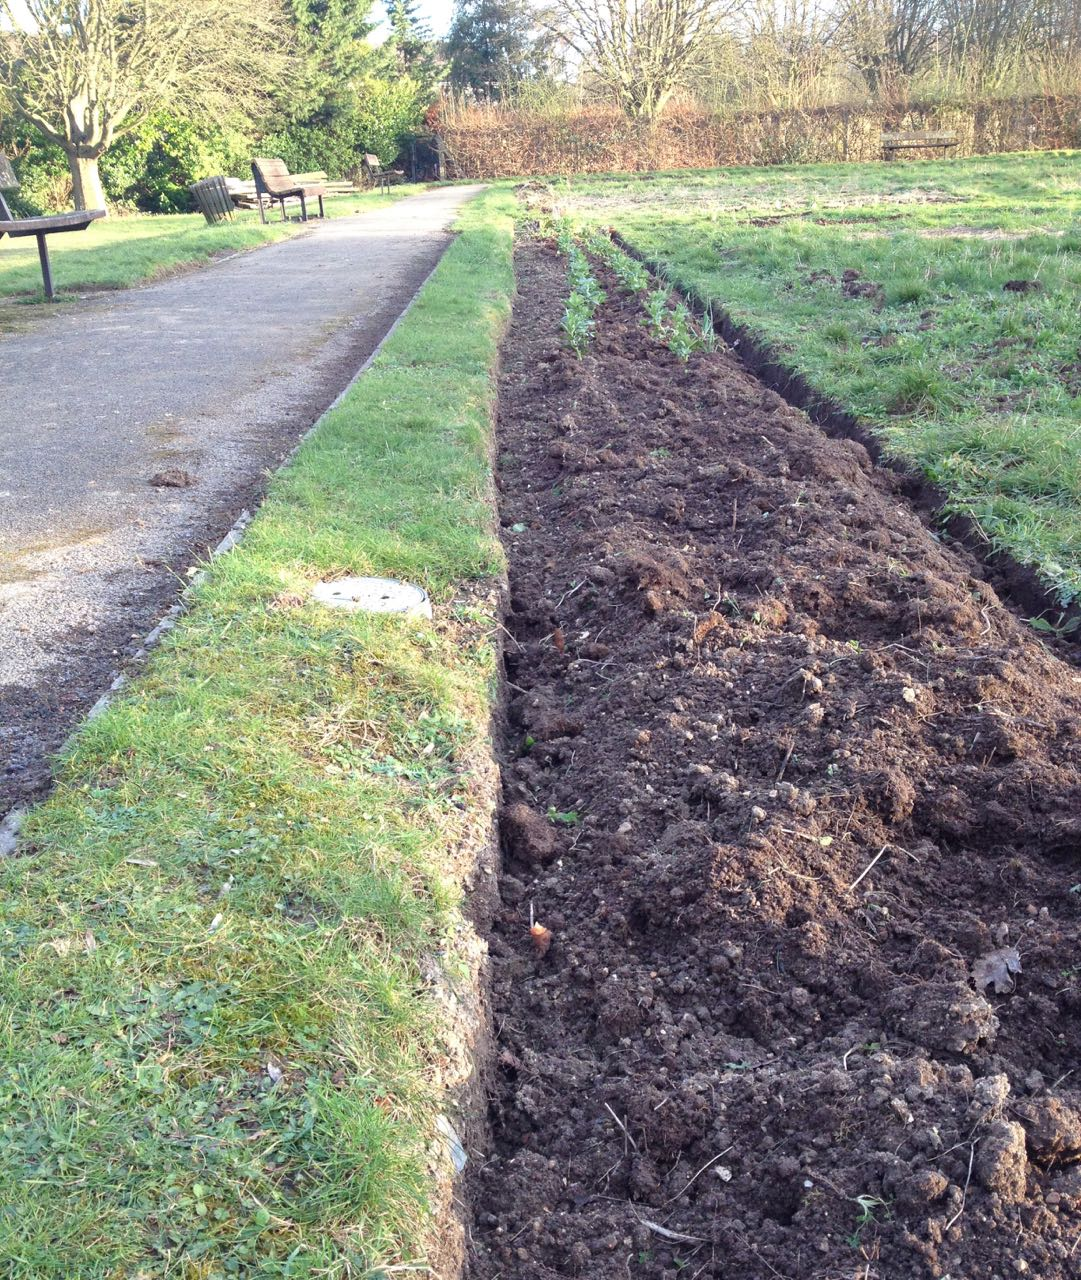 A new crisp edge to our 'veg ditch' - we can sow more broad beans there soon - to join the ones that went in in the Autumn, which are growing well.